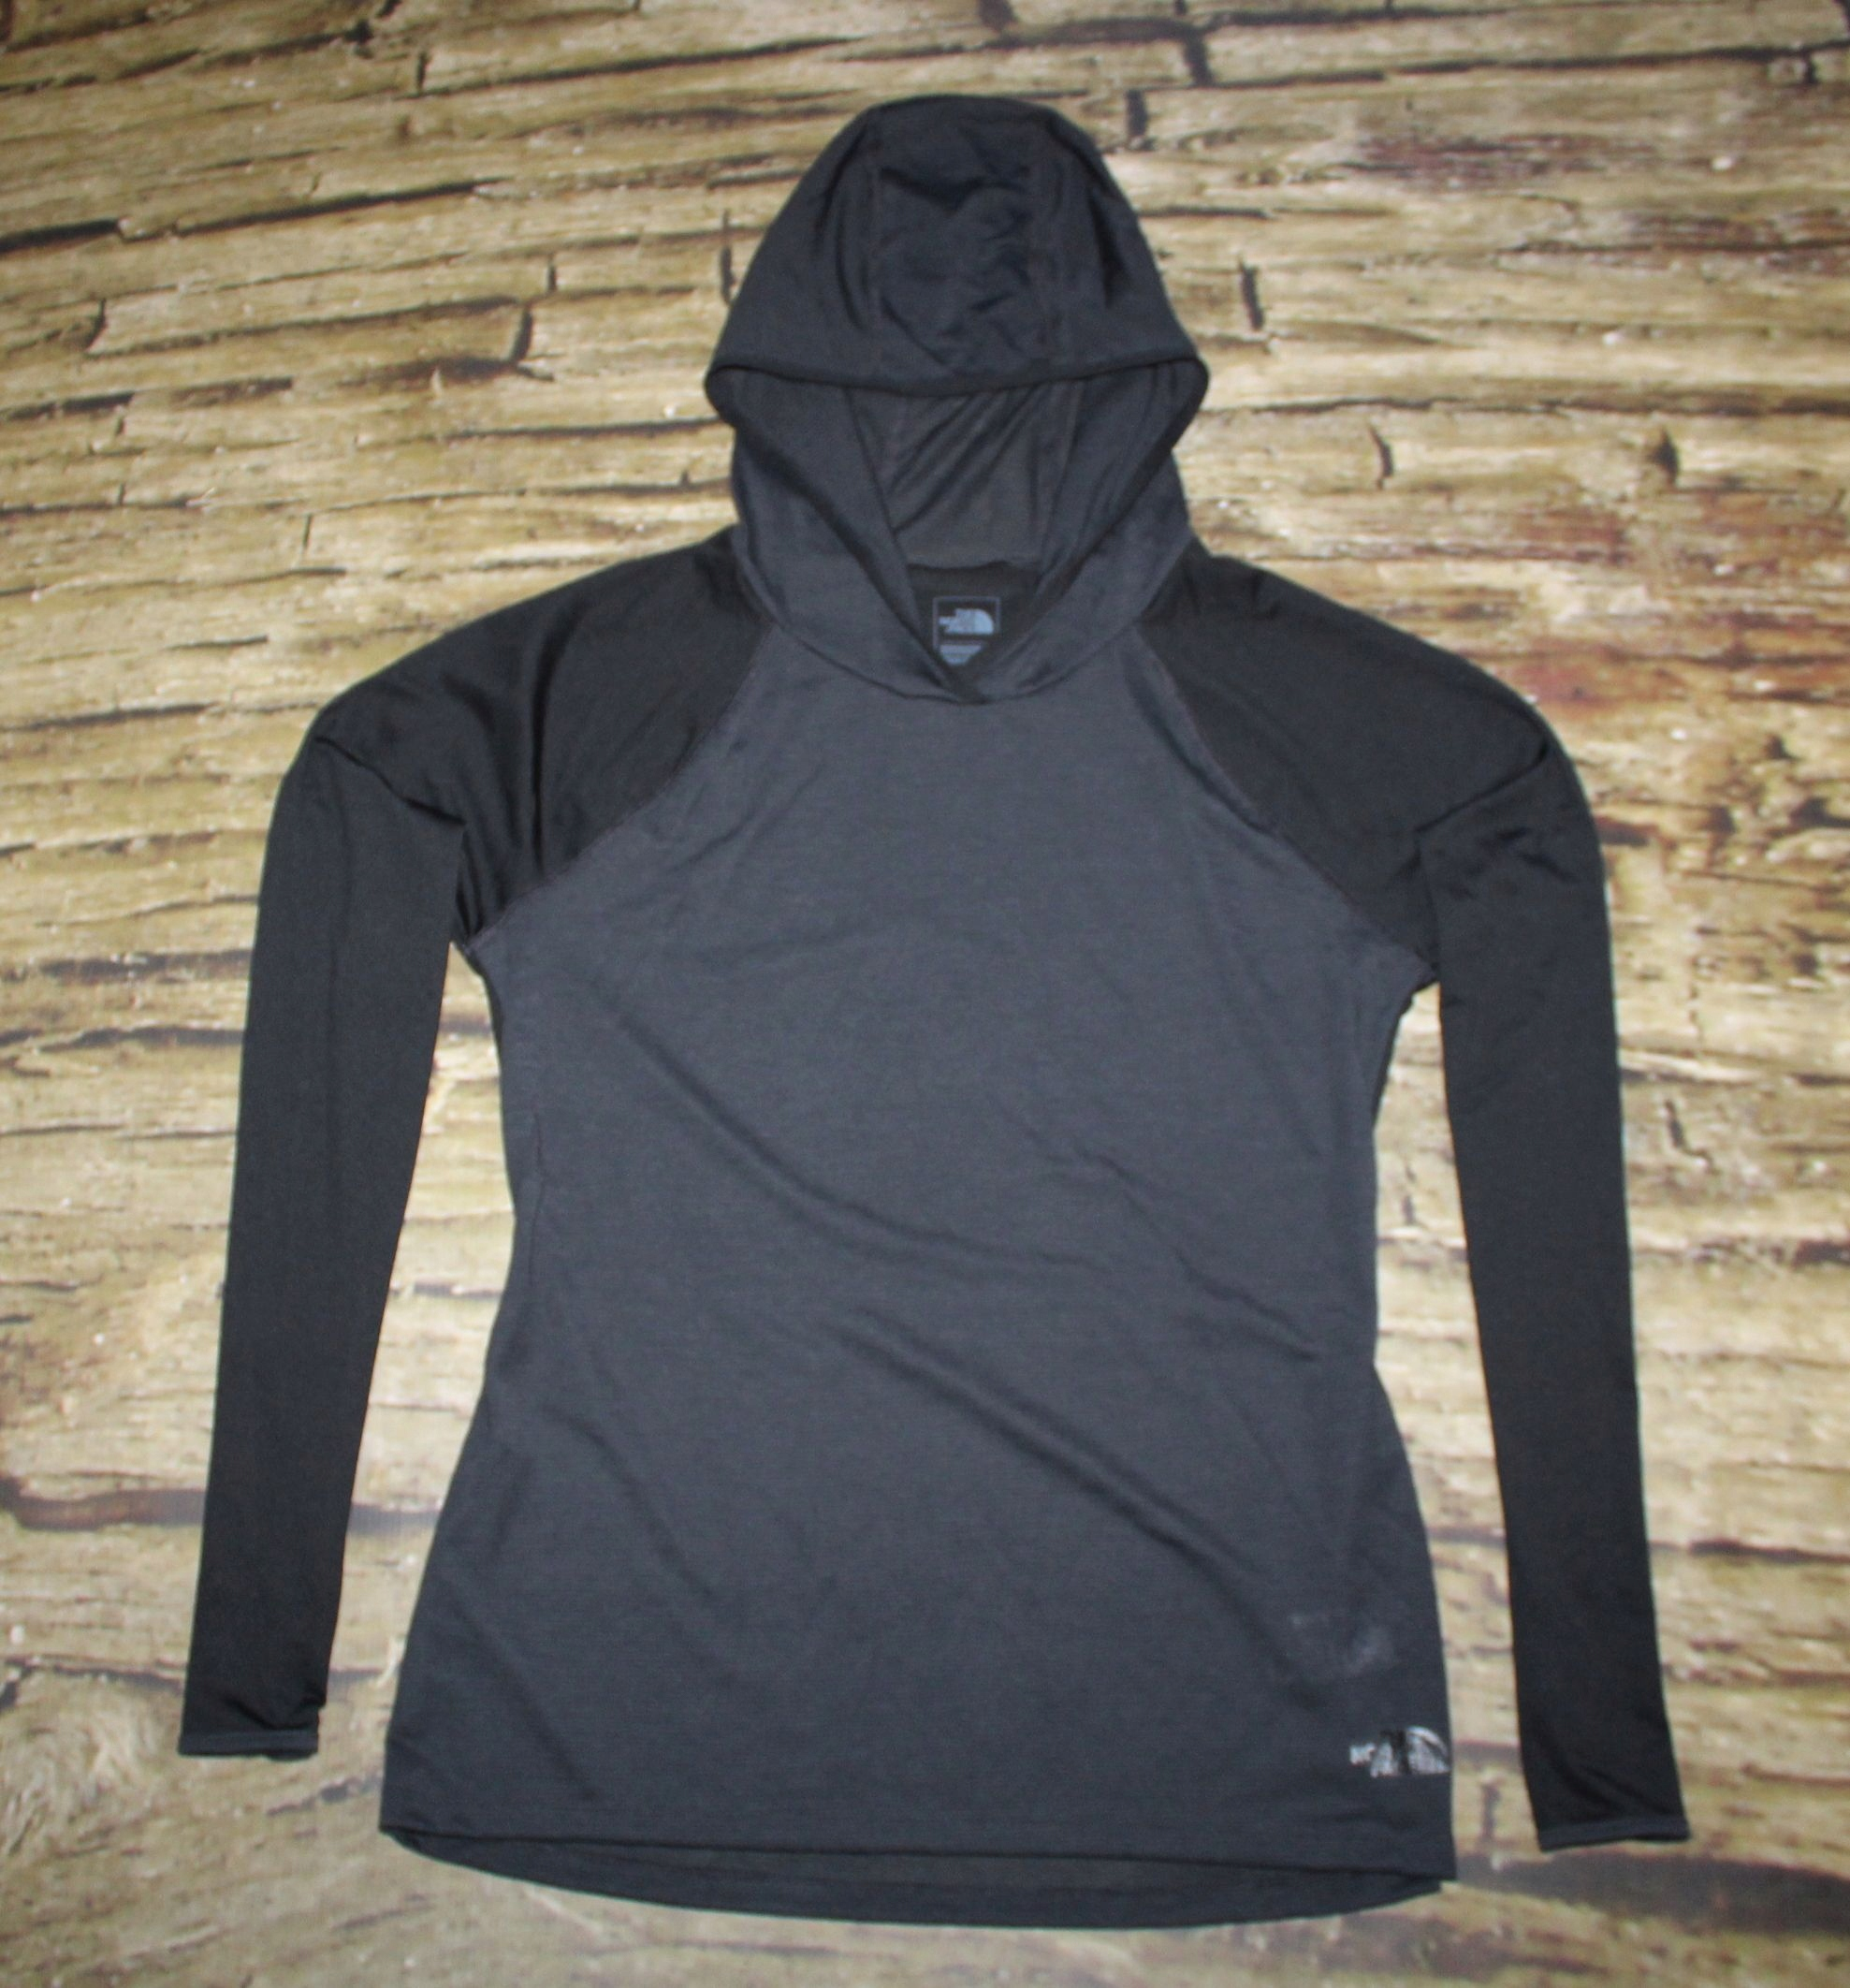 THE NORTH FACE PULLOVER HOODIE FLASHDRY roz. M